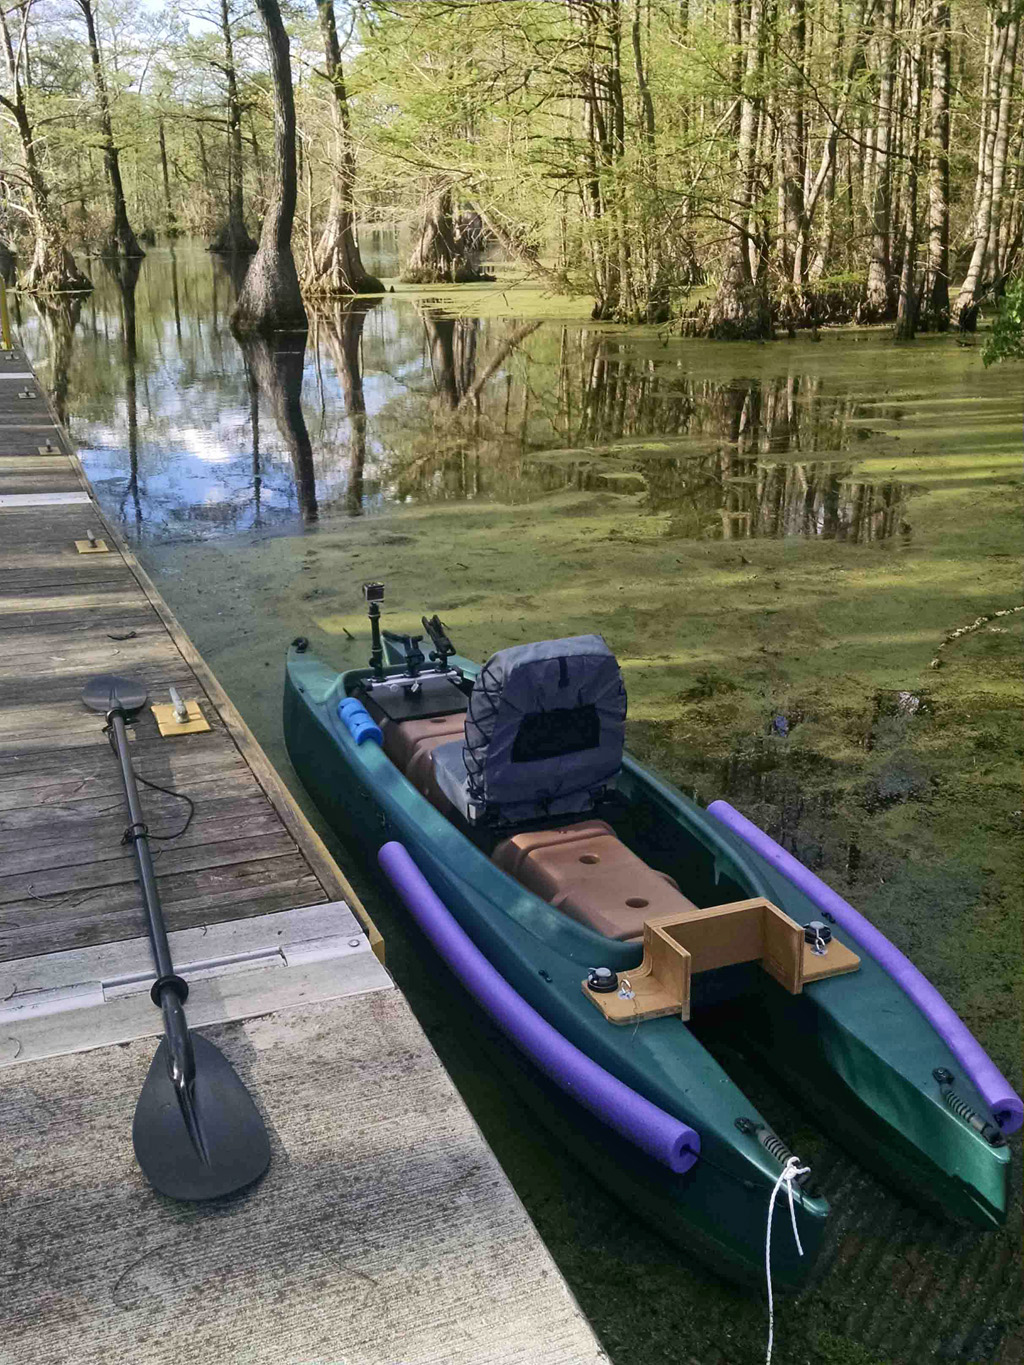 My kayak docked in Merchants Mill pond